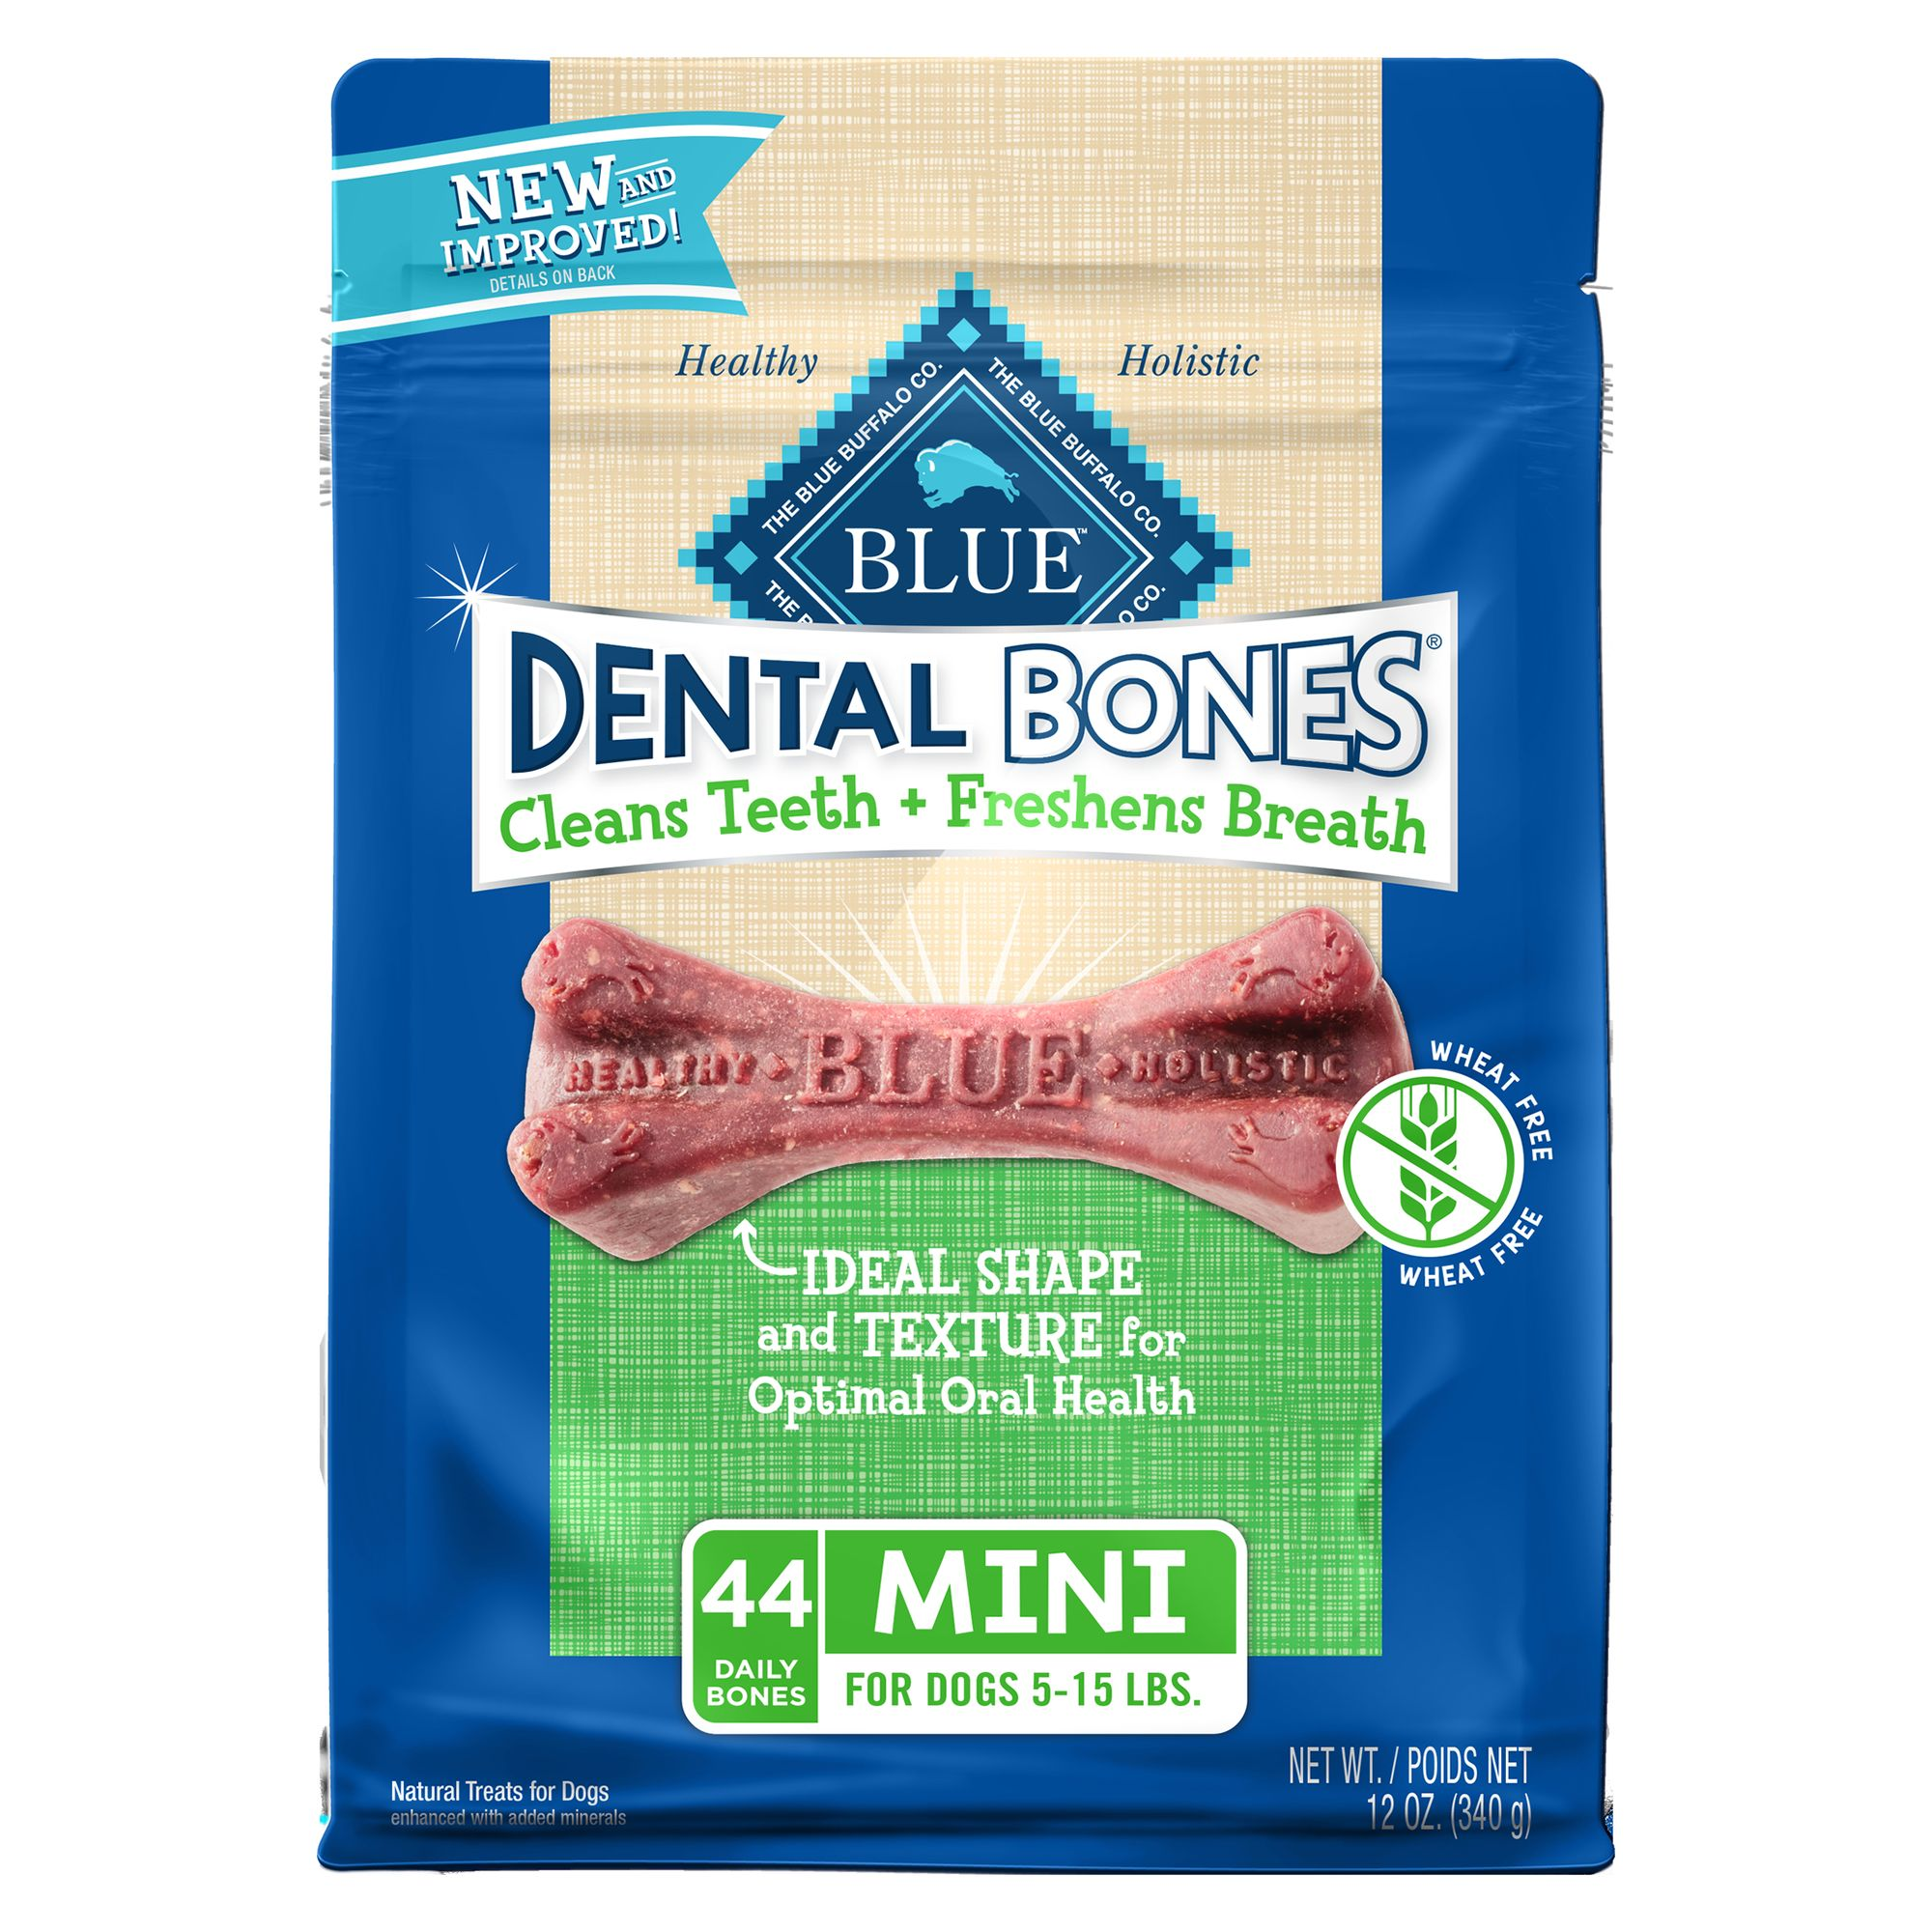 Blue Dental Bones, Mini Dog Treat - Natural size: 12 Oz, Blue Buffalo, Adult, Potato